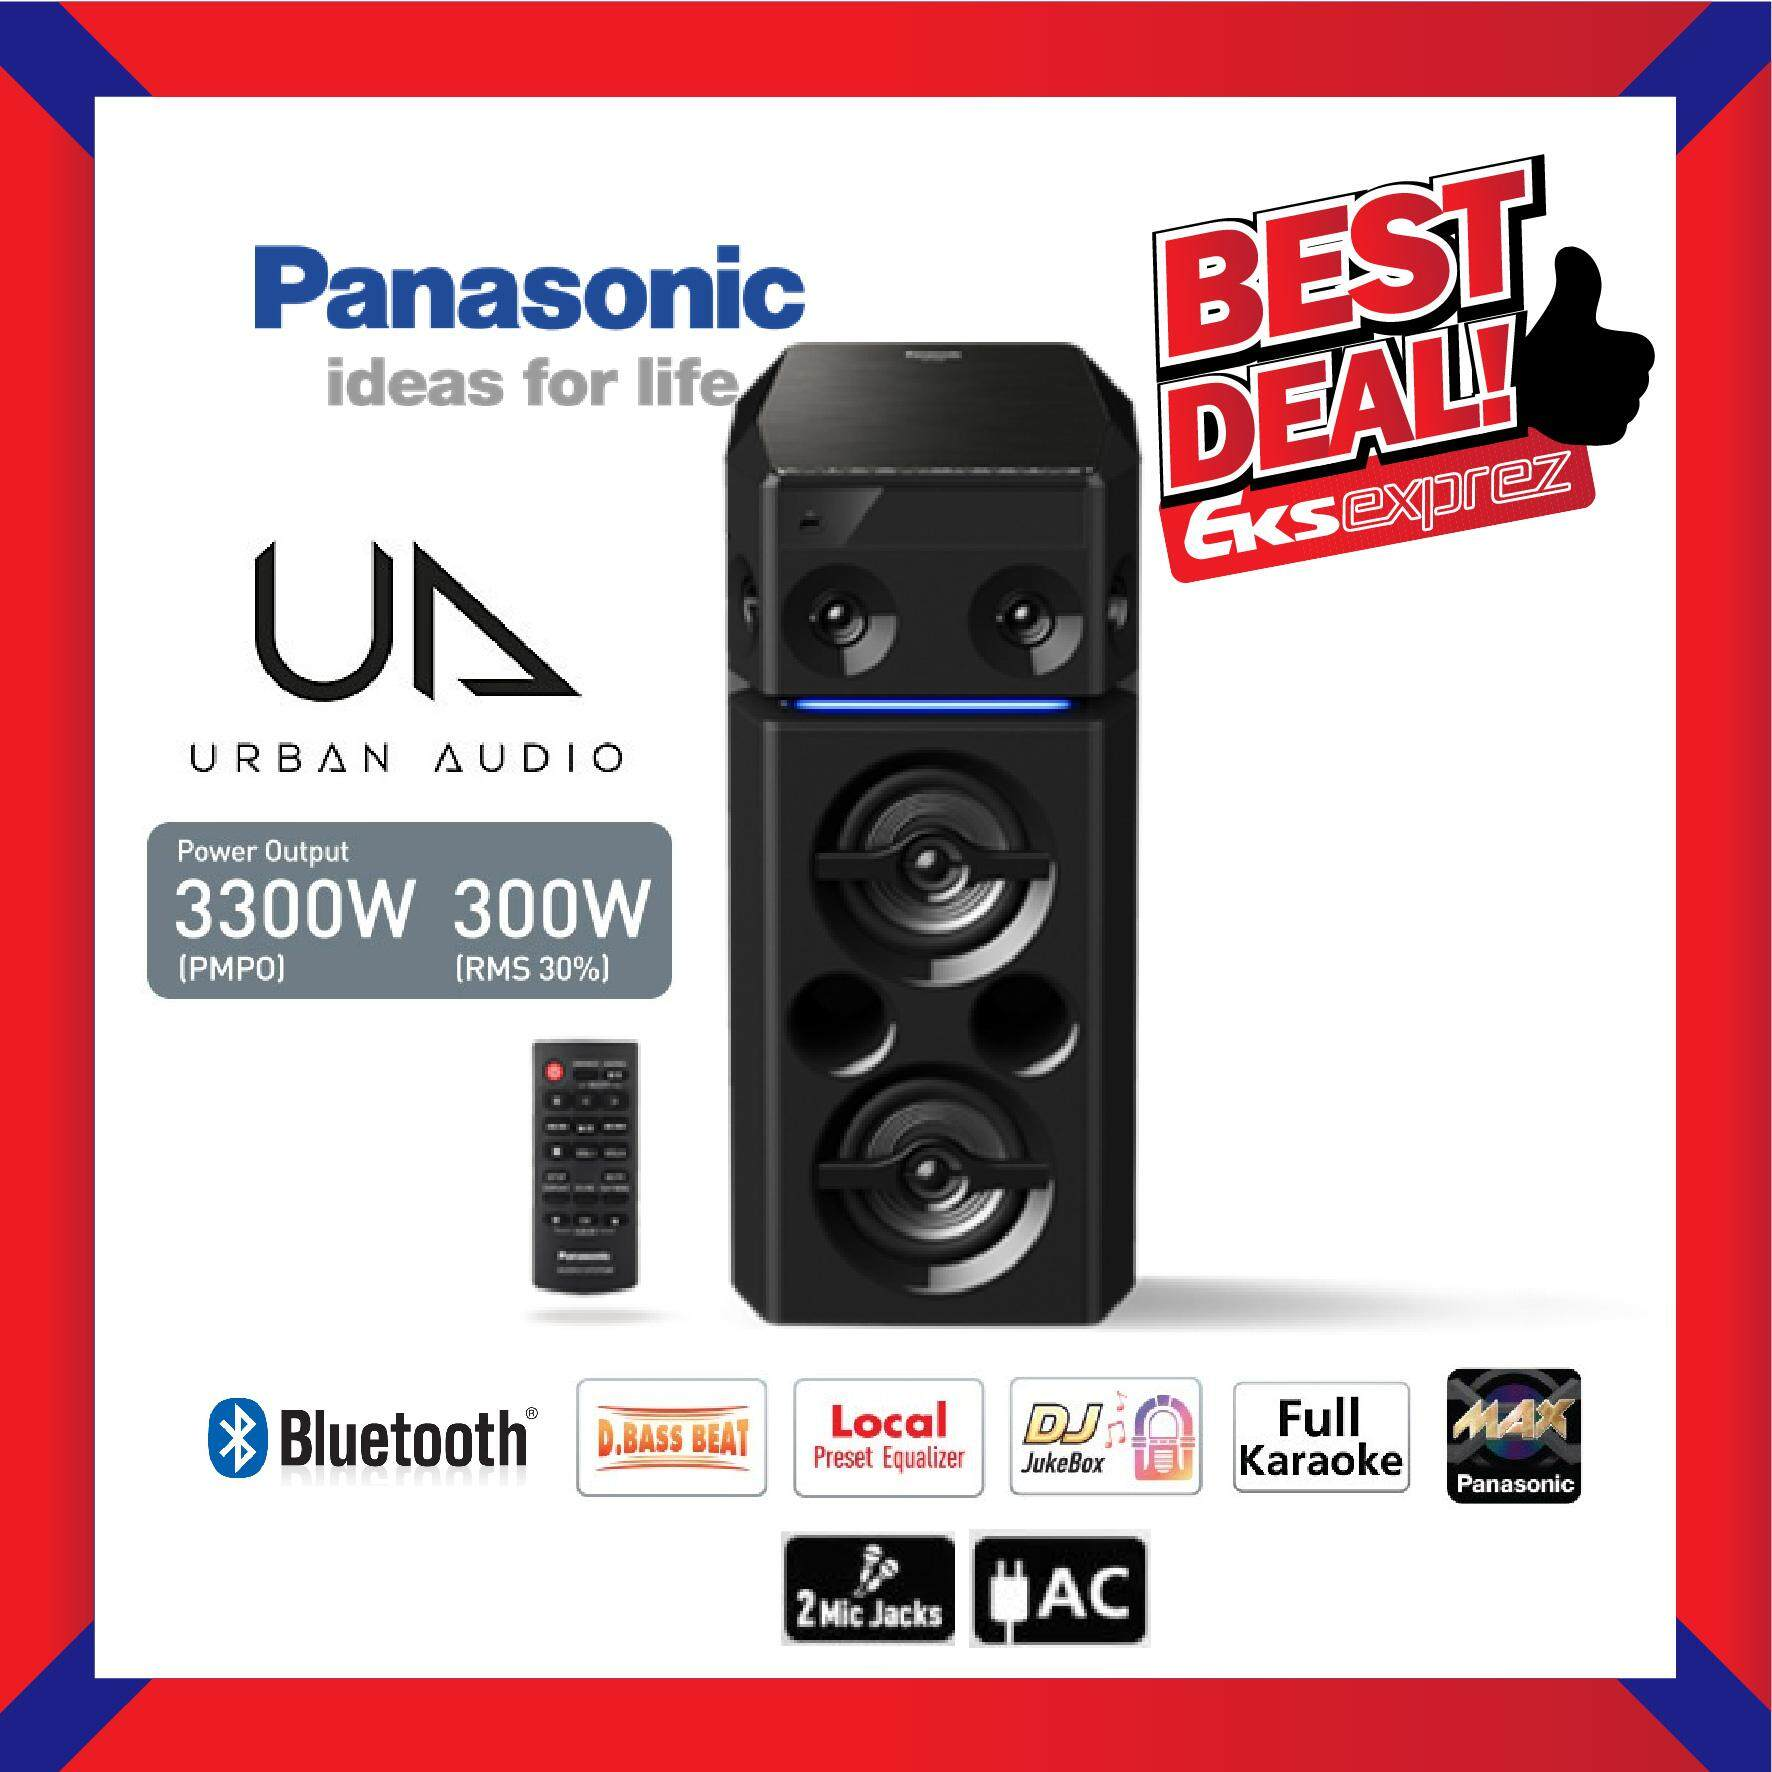 Panasonic Urban Audio SC-UA30GSXK Karaoke / Jukebox / HIFI Speaker /  Bluetooth